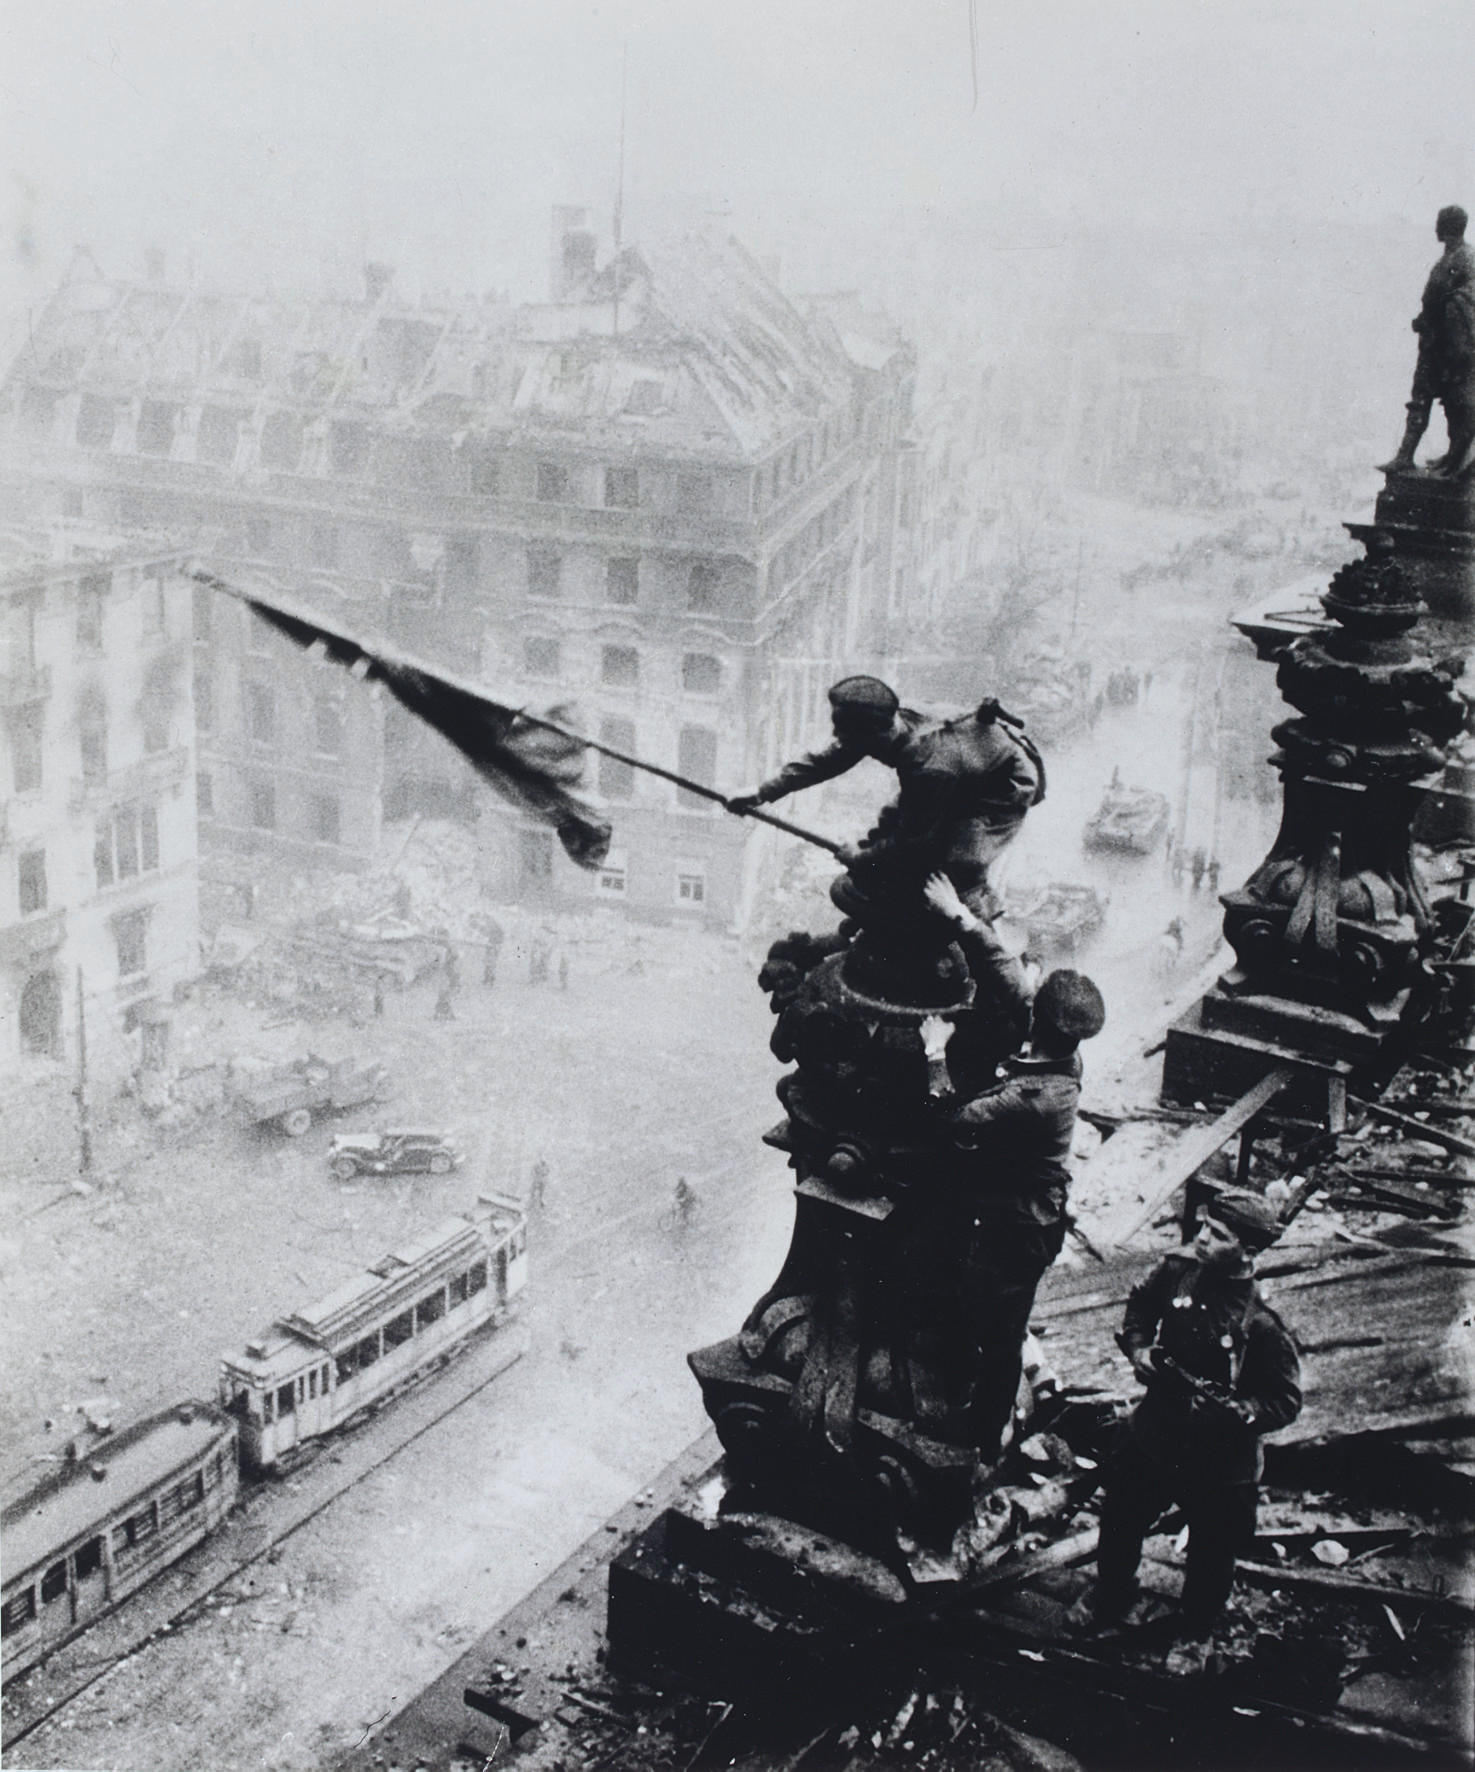 Planting flag on the Reichstag, 30 April 1945